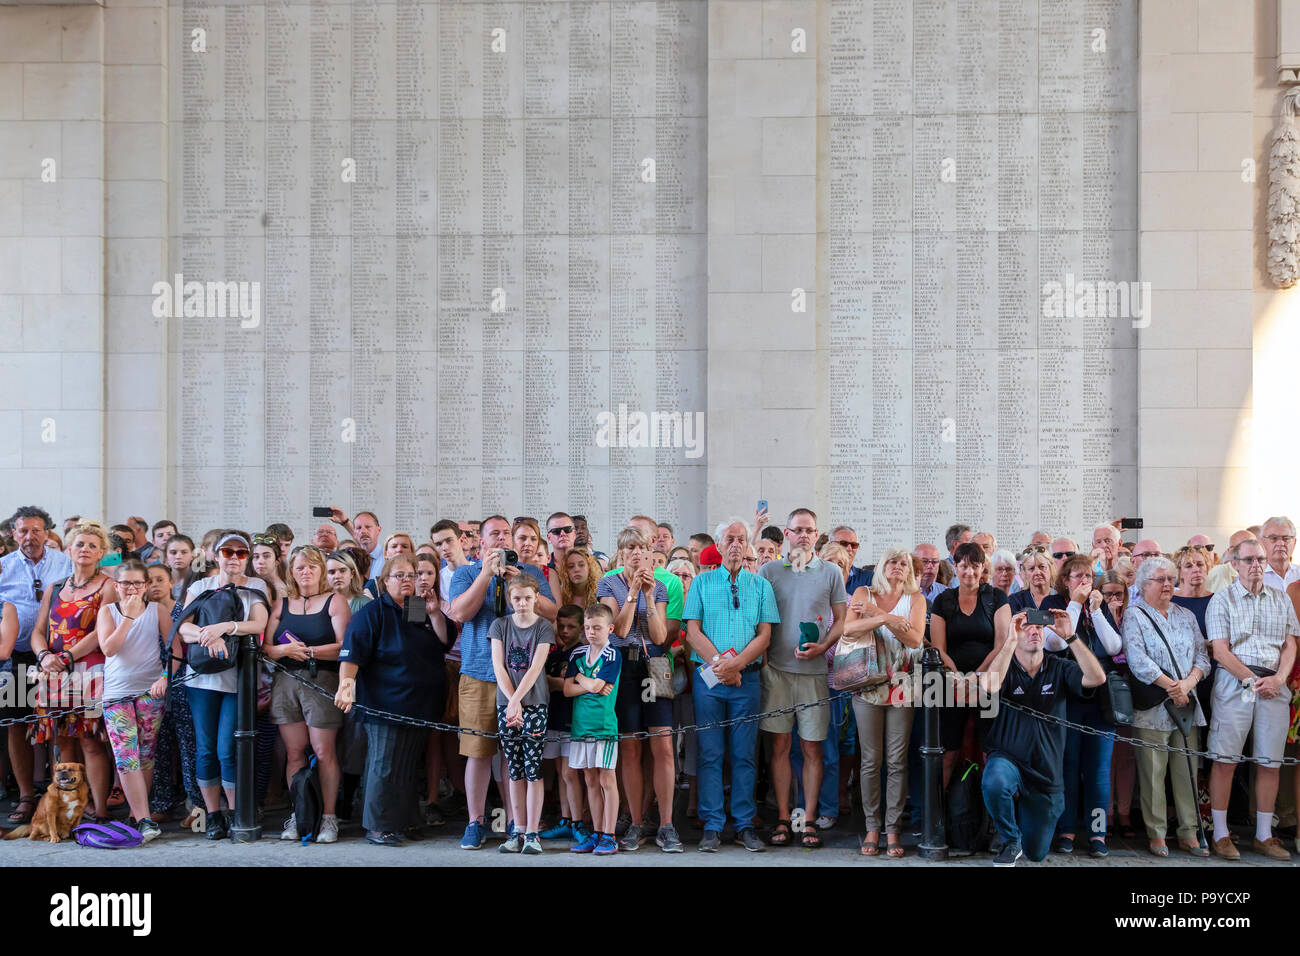 Members off the public in attendance at the nightly memorial service of remembrance at the Menin Gate, Ypres, Belgium - Stock Image